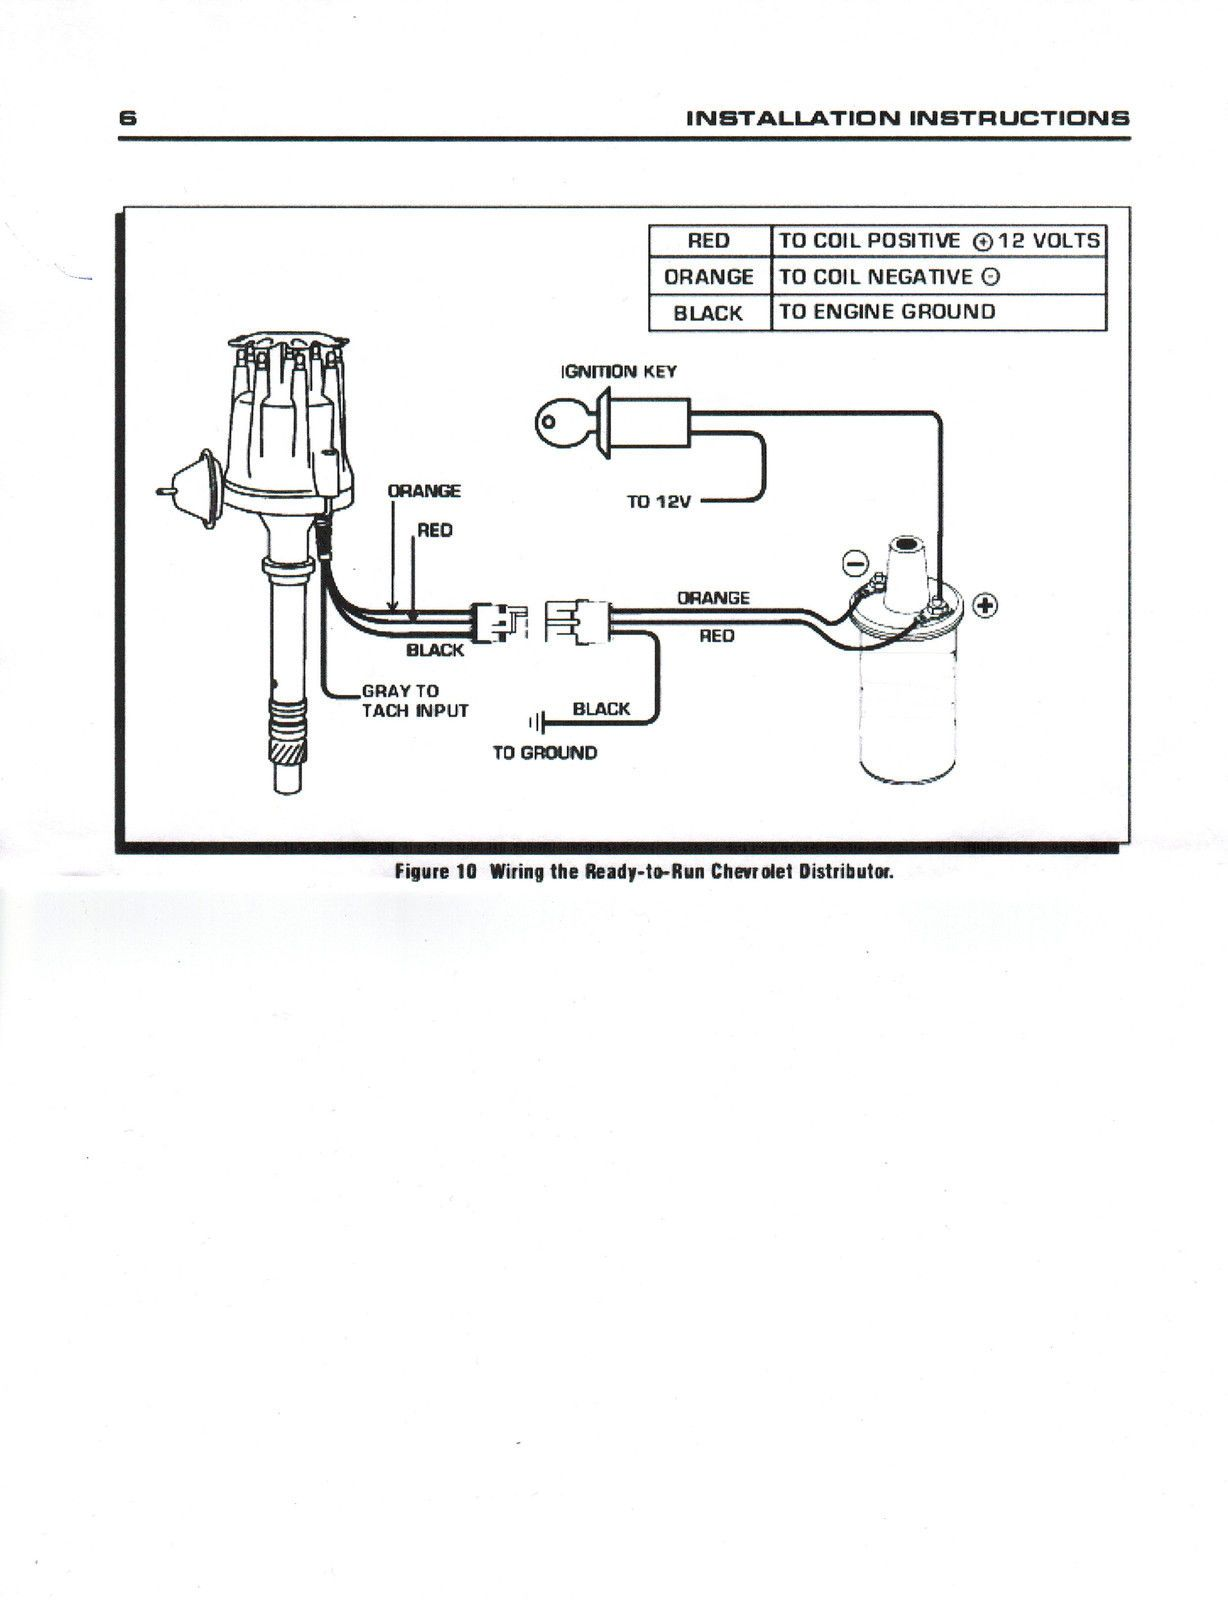 Distributor Wiring Diagram : distributor, wiring, diagram, Chevy, Distributor, Wiring, Diagram, Diagram,, Chevy,